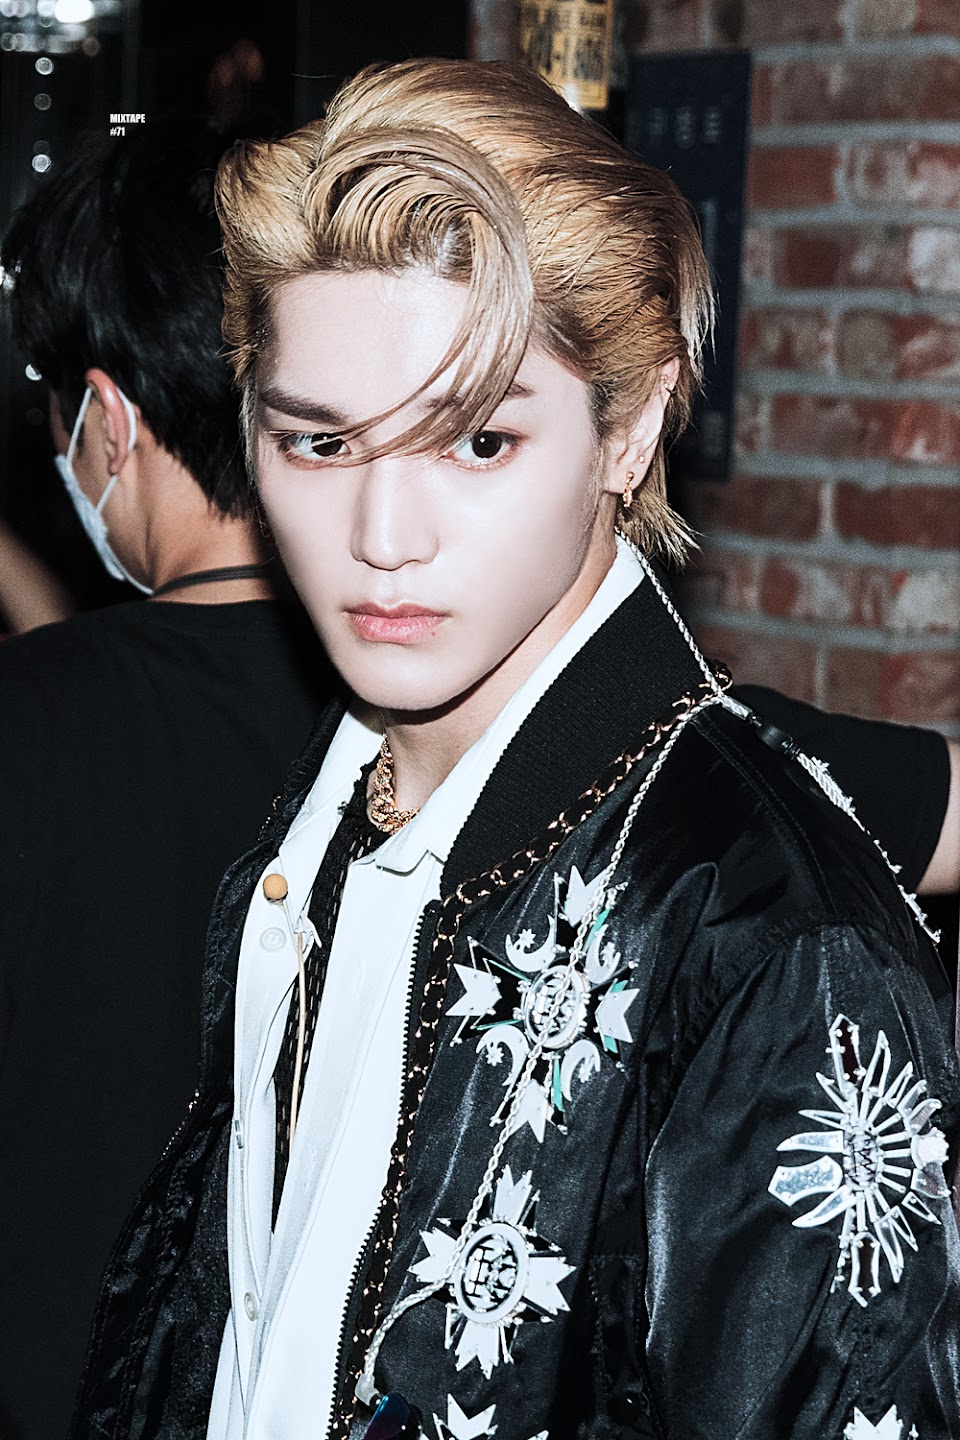 nct 127 superm taeyong